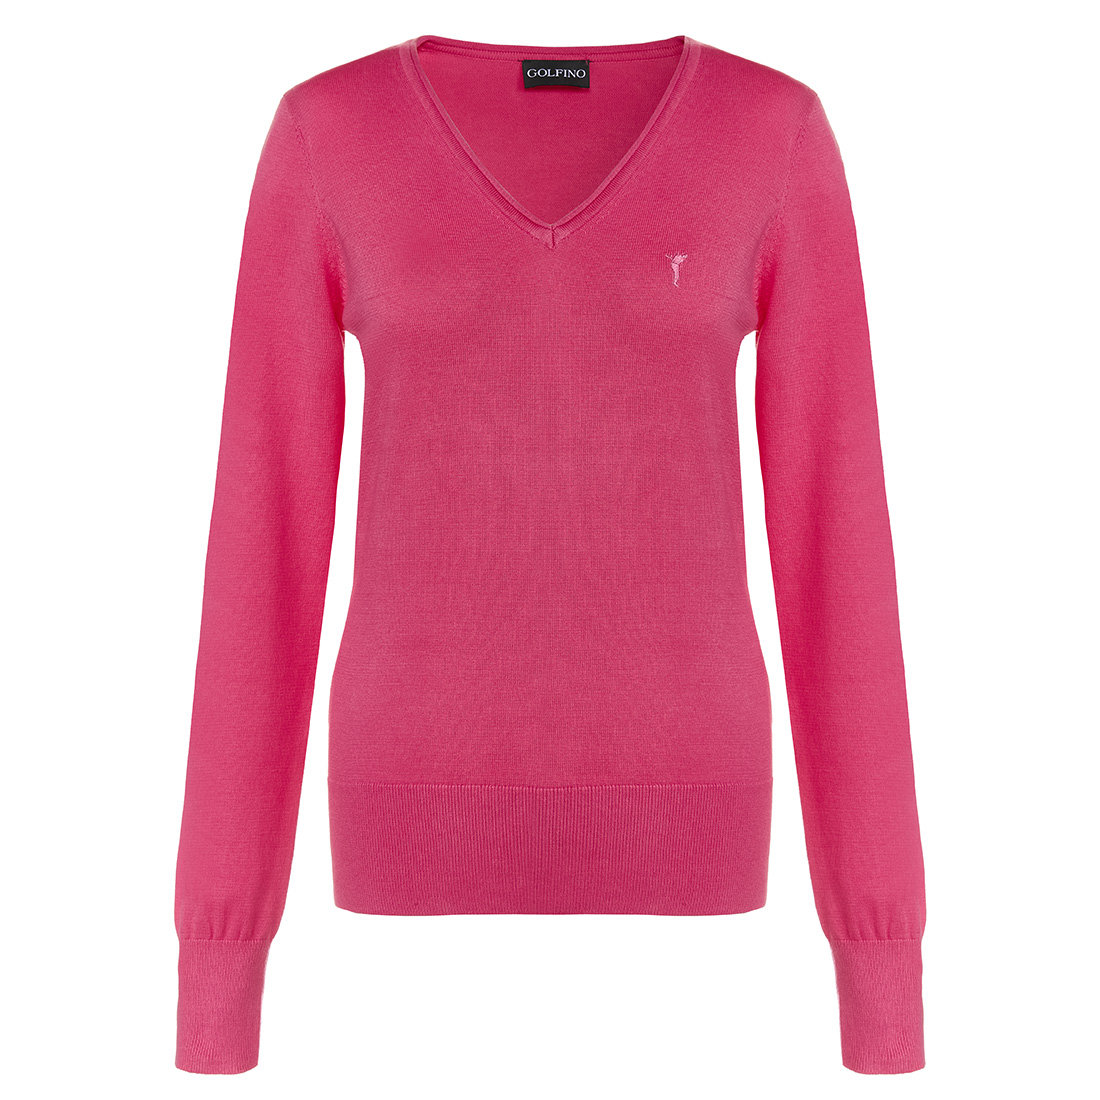 Ladies' golf pullover made from extra-soft cotton with V-neck